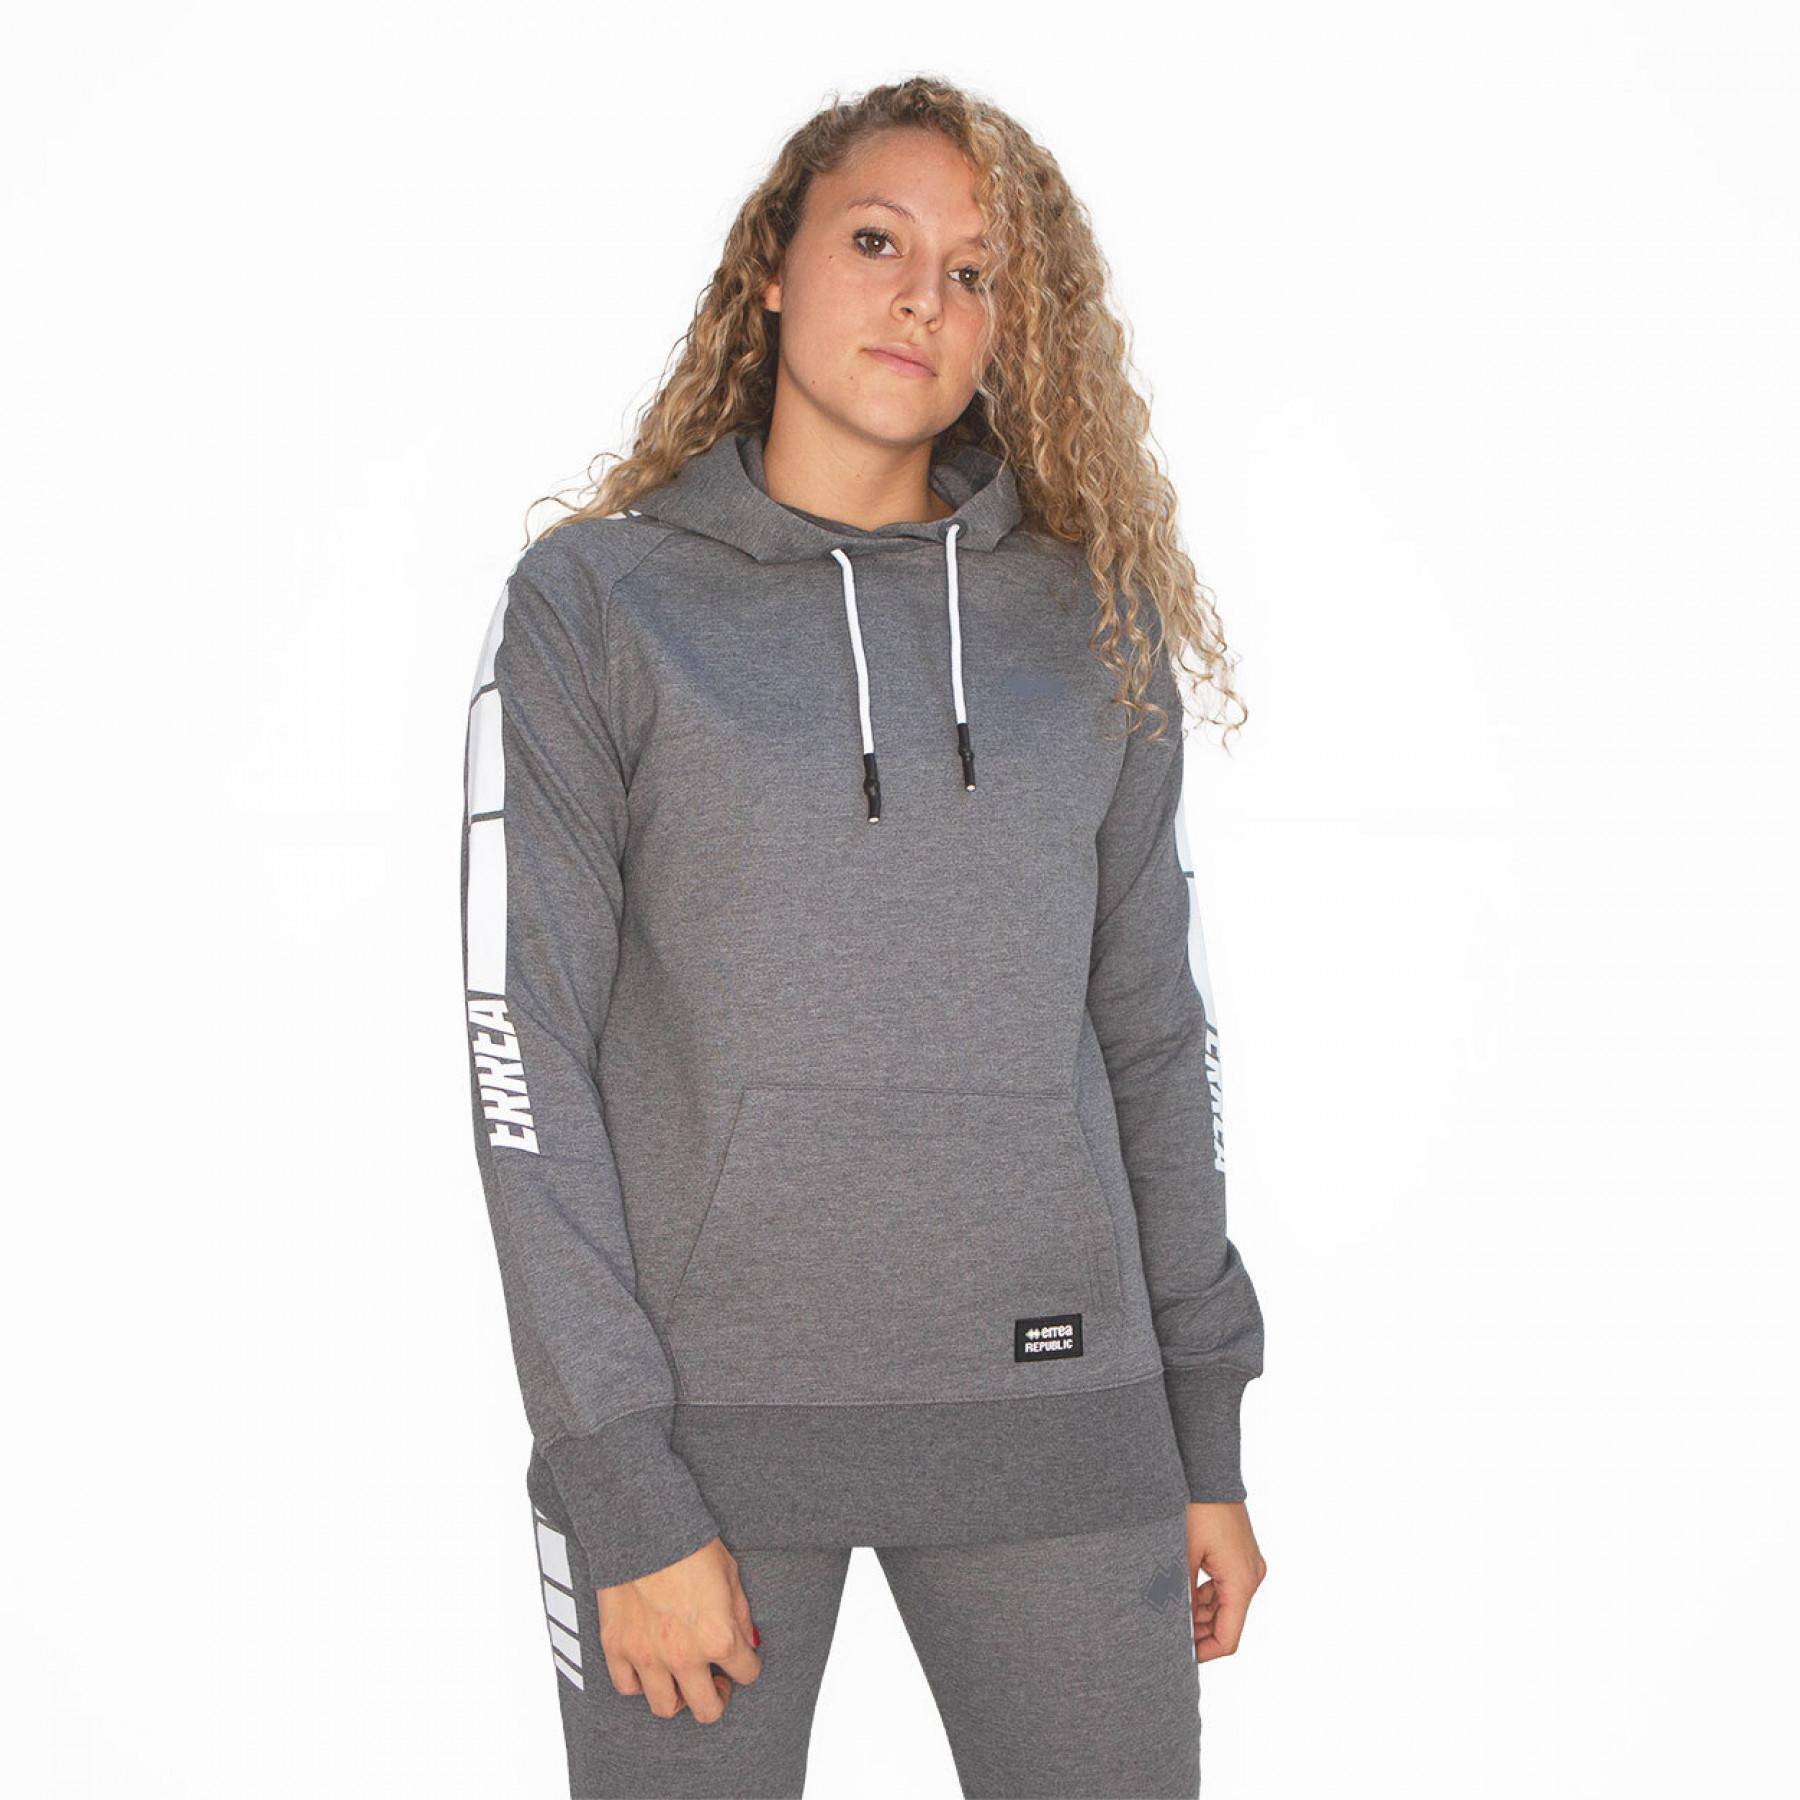 Sweatshirt woman Errea sport inspired ad